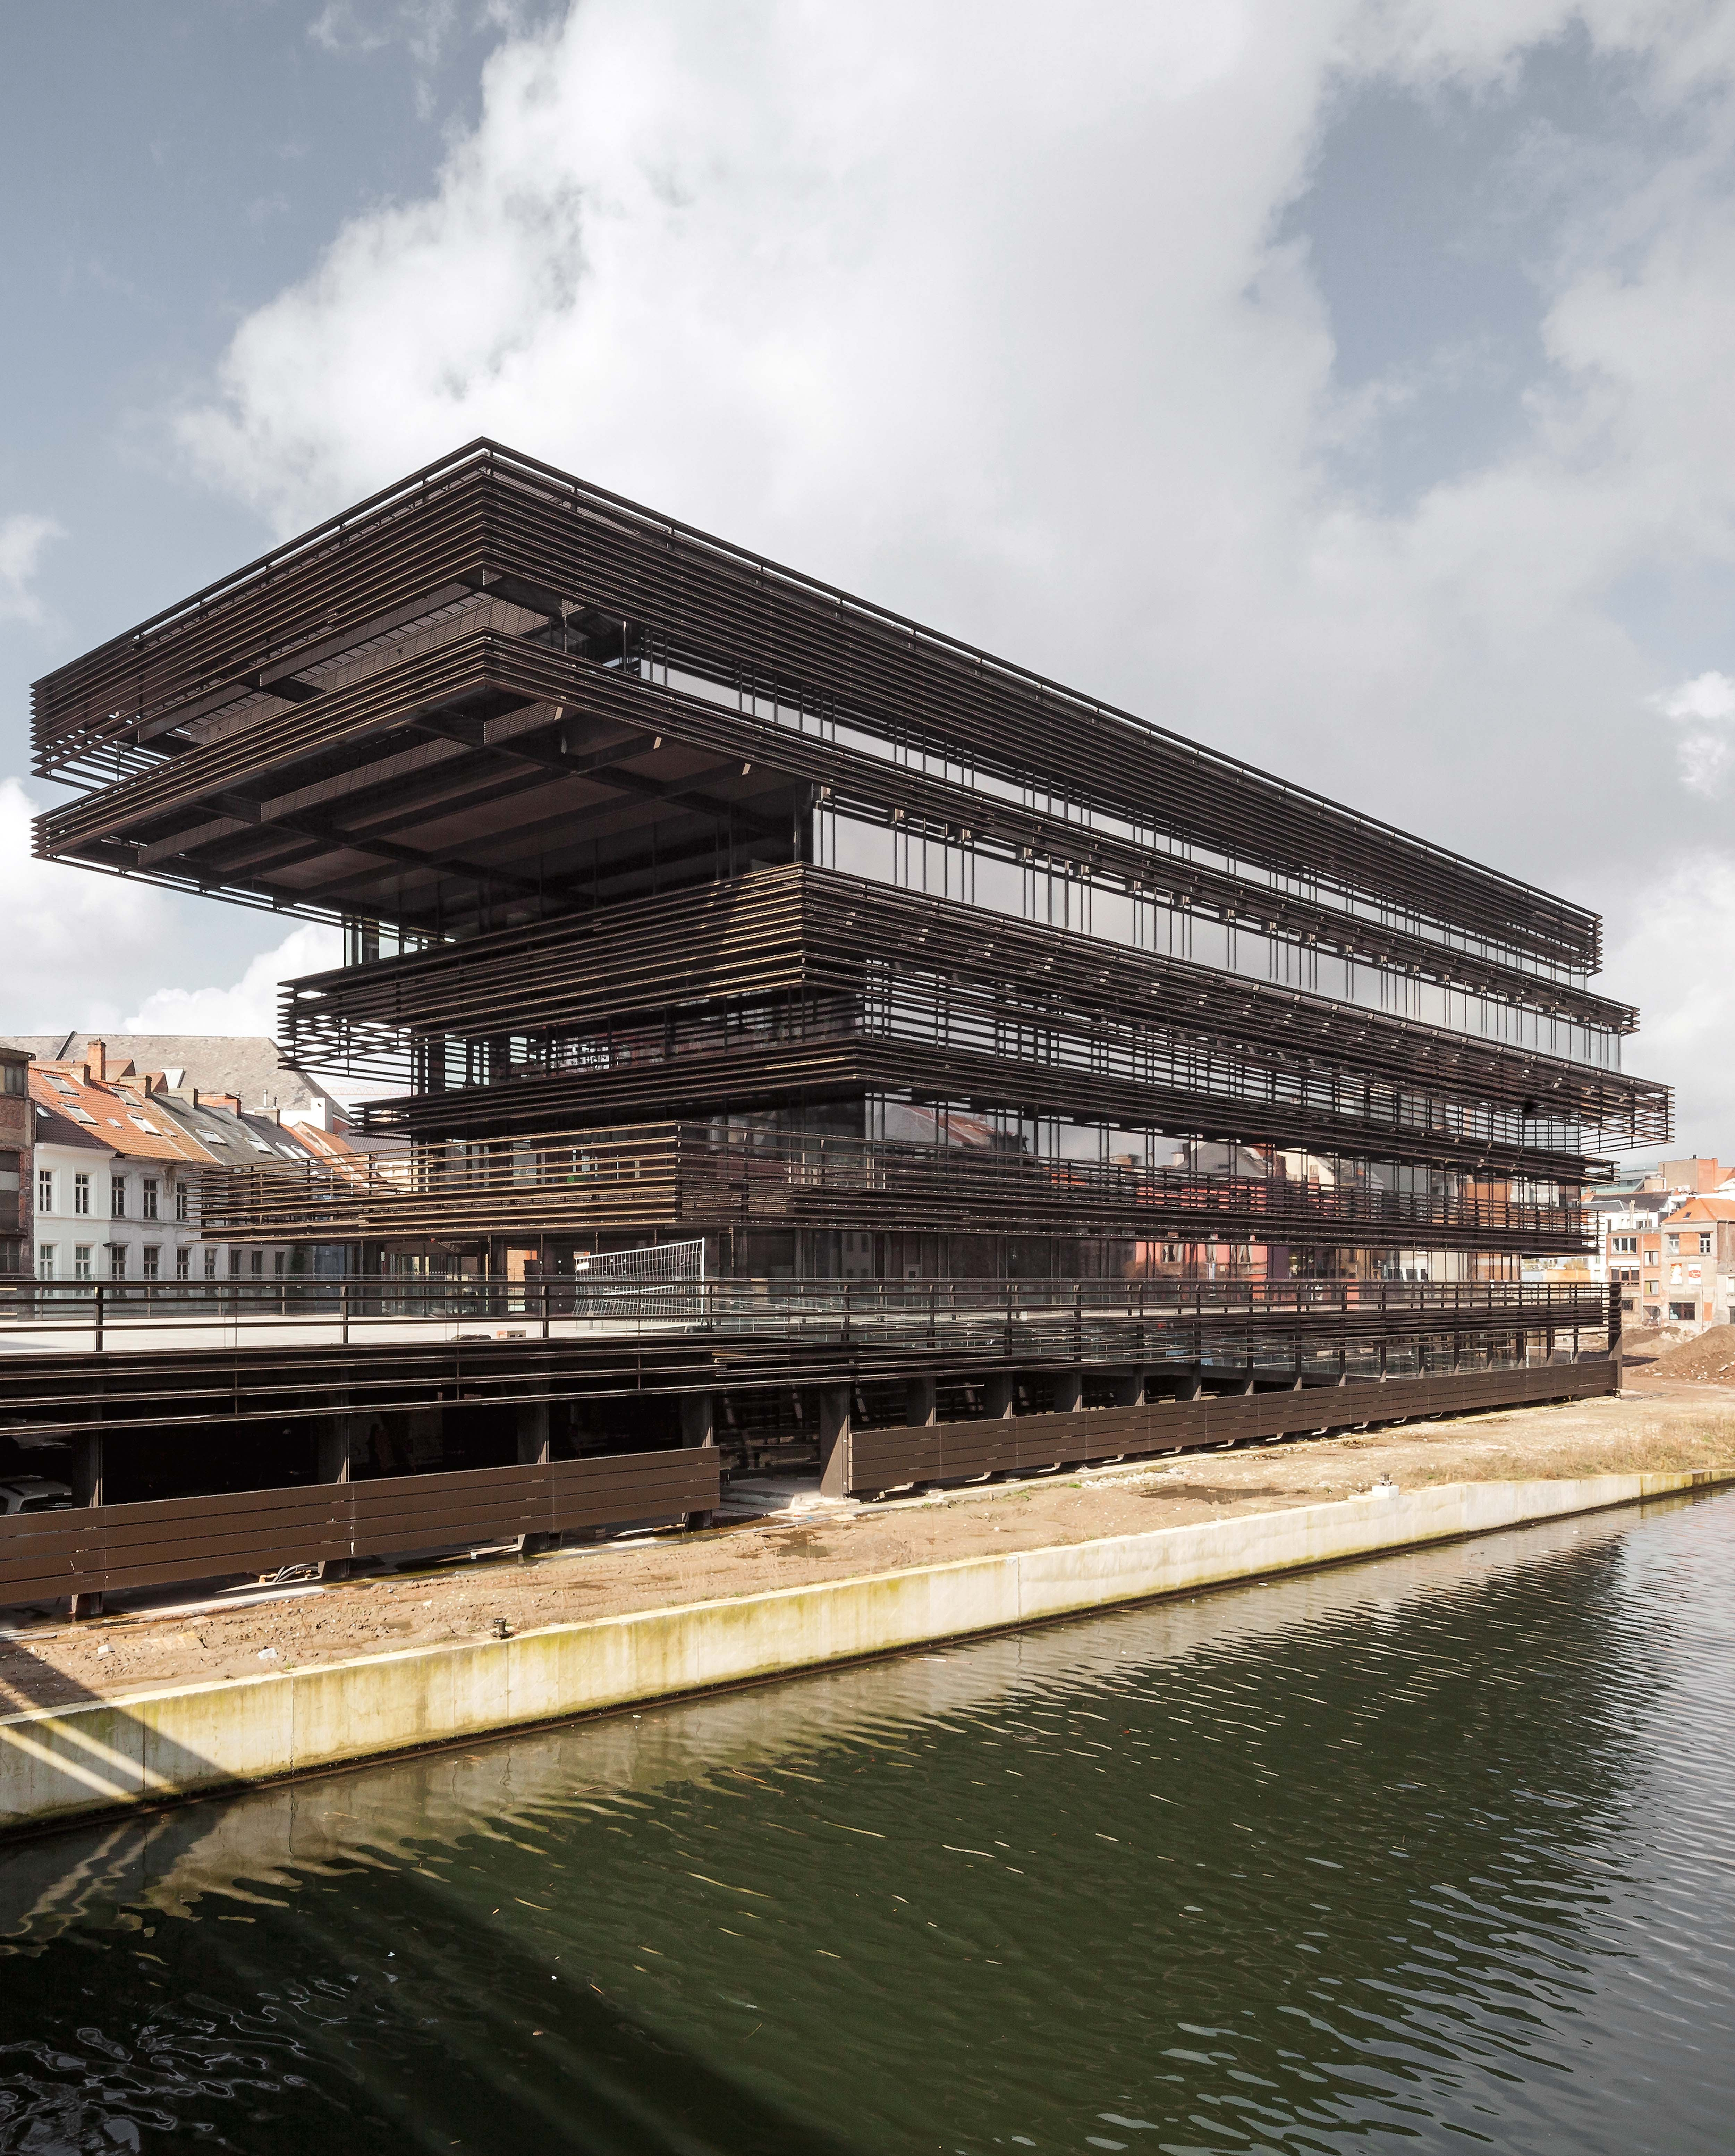 Media Library in Ghent